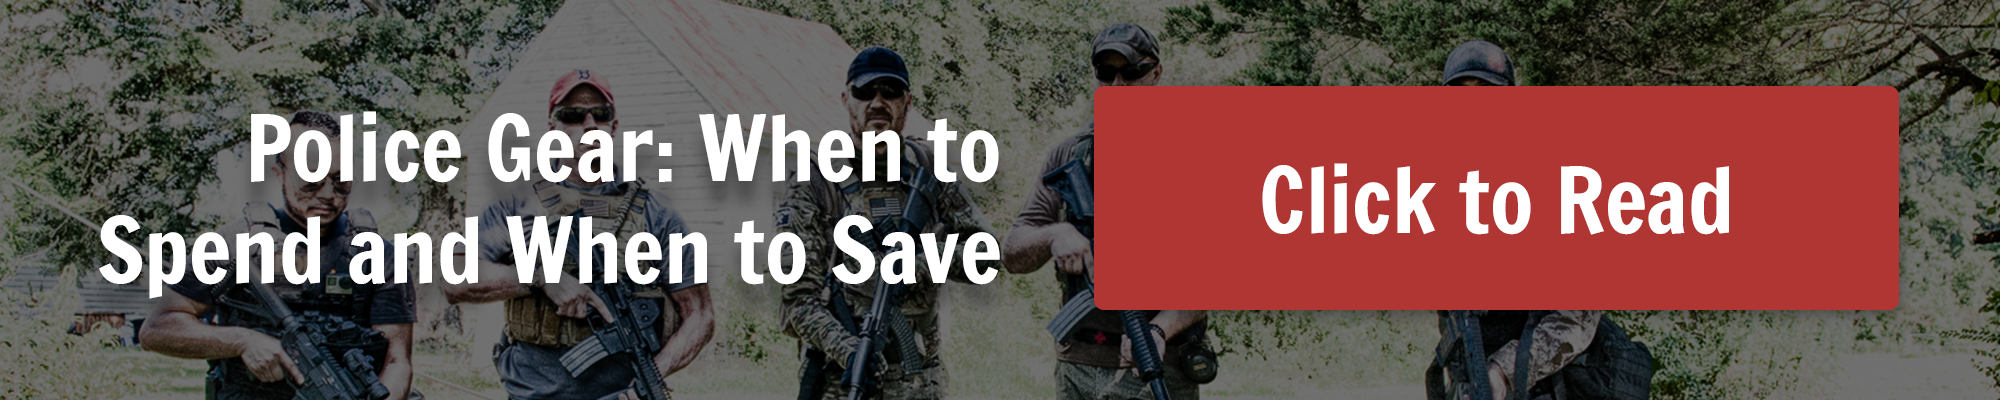 When to save or spend on police tactical gear